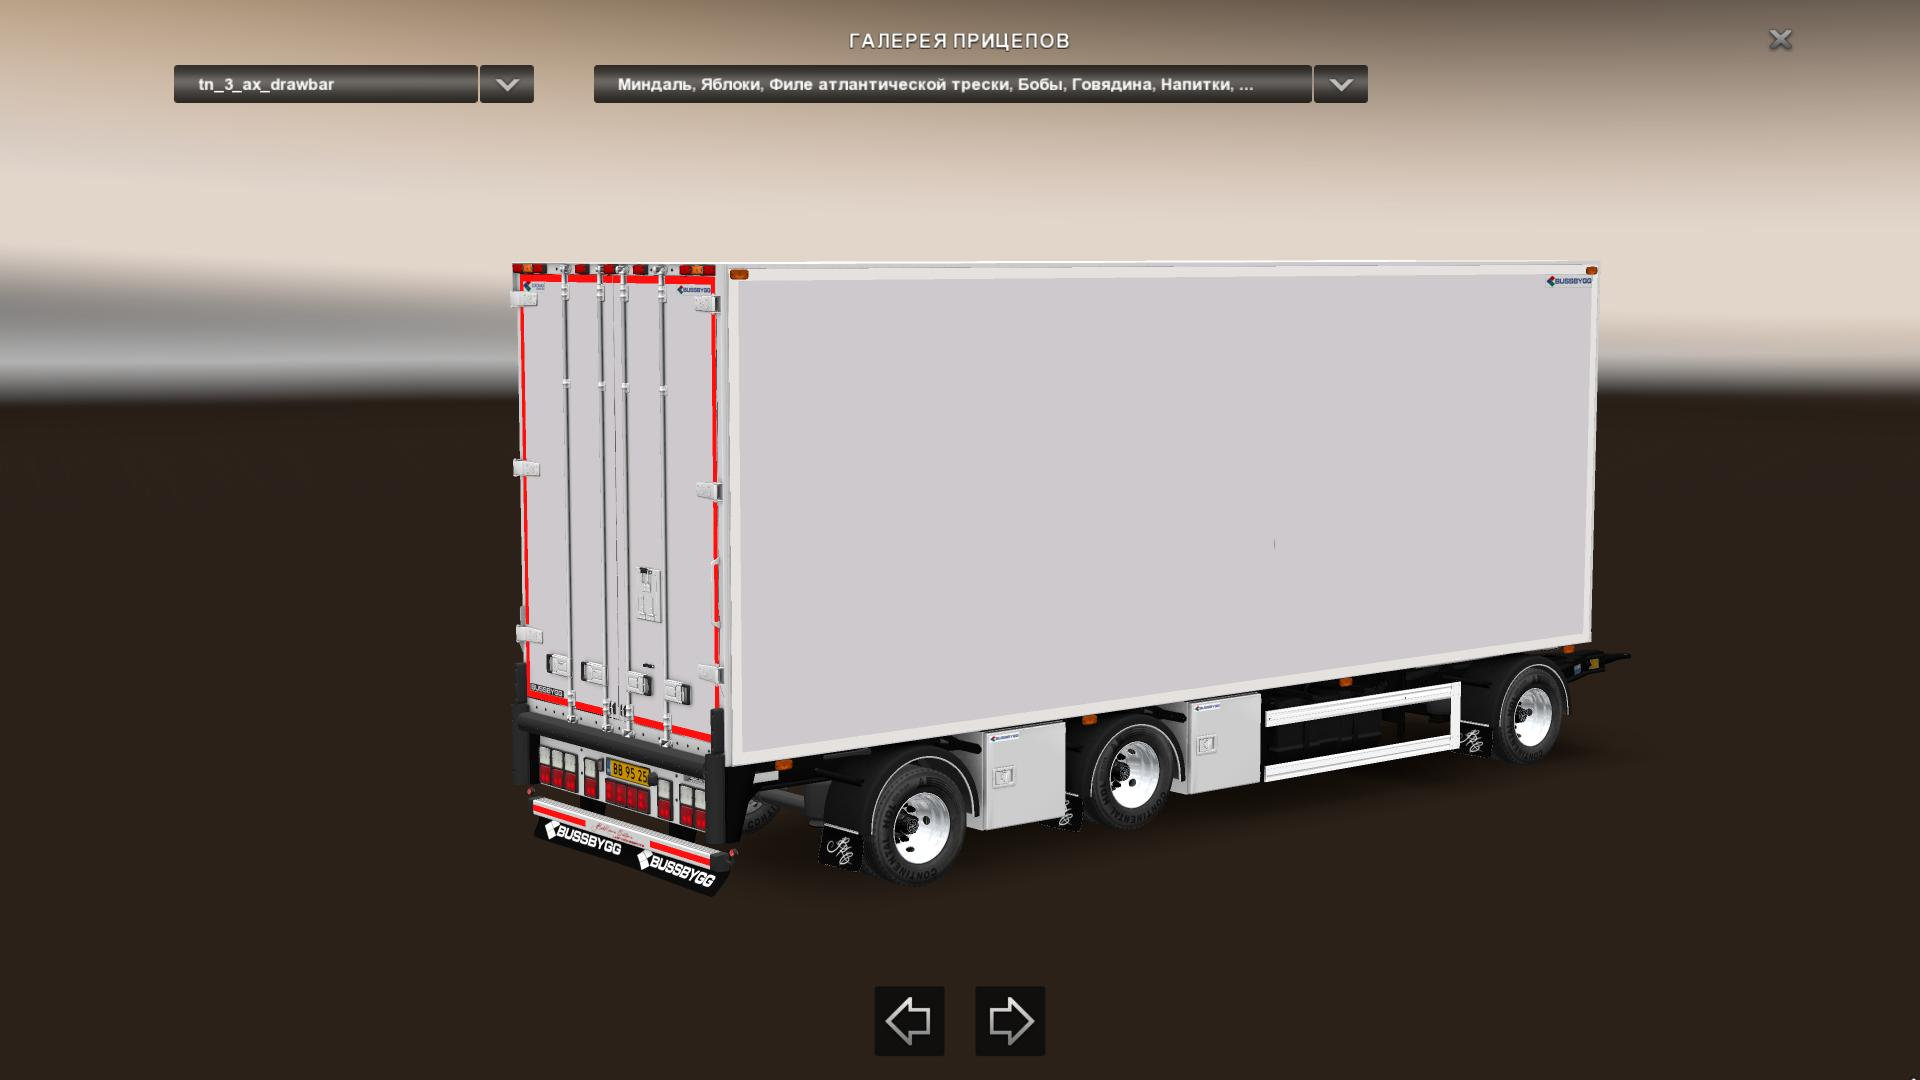 bussbygg 3 axle drawbar trailer v1 2 ets2 euro truck simulator 2 mods. Black Bedroom Furniture Sets. Home Design Ideas